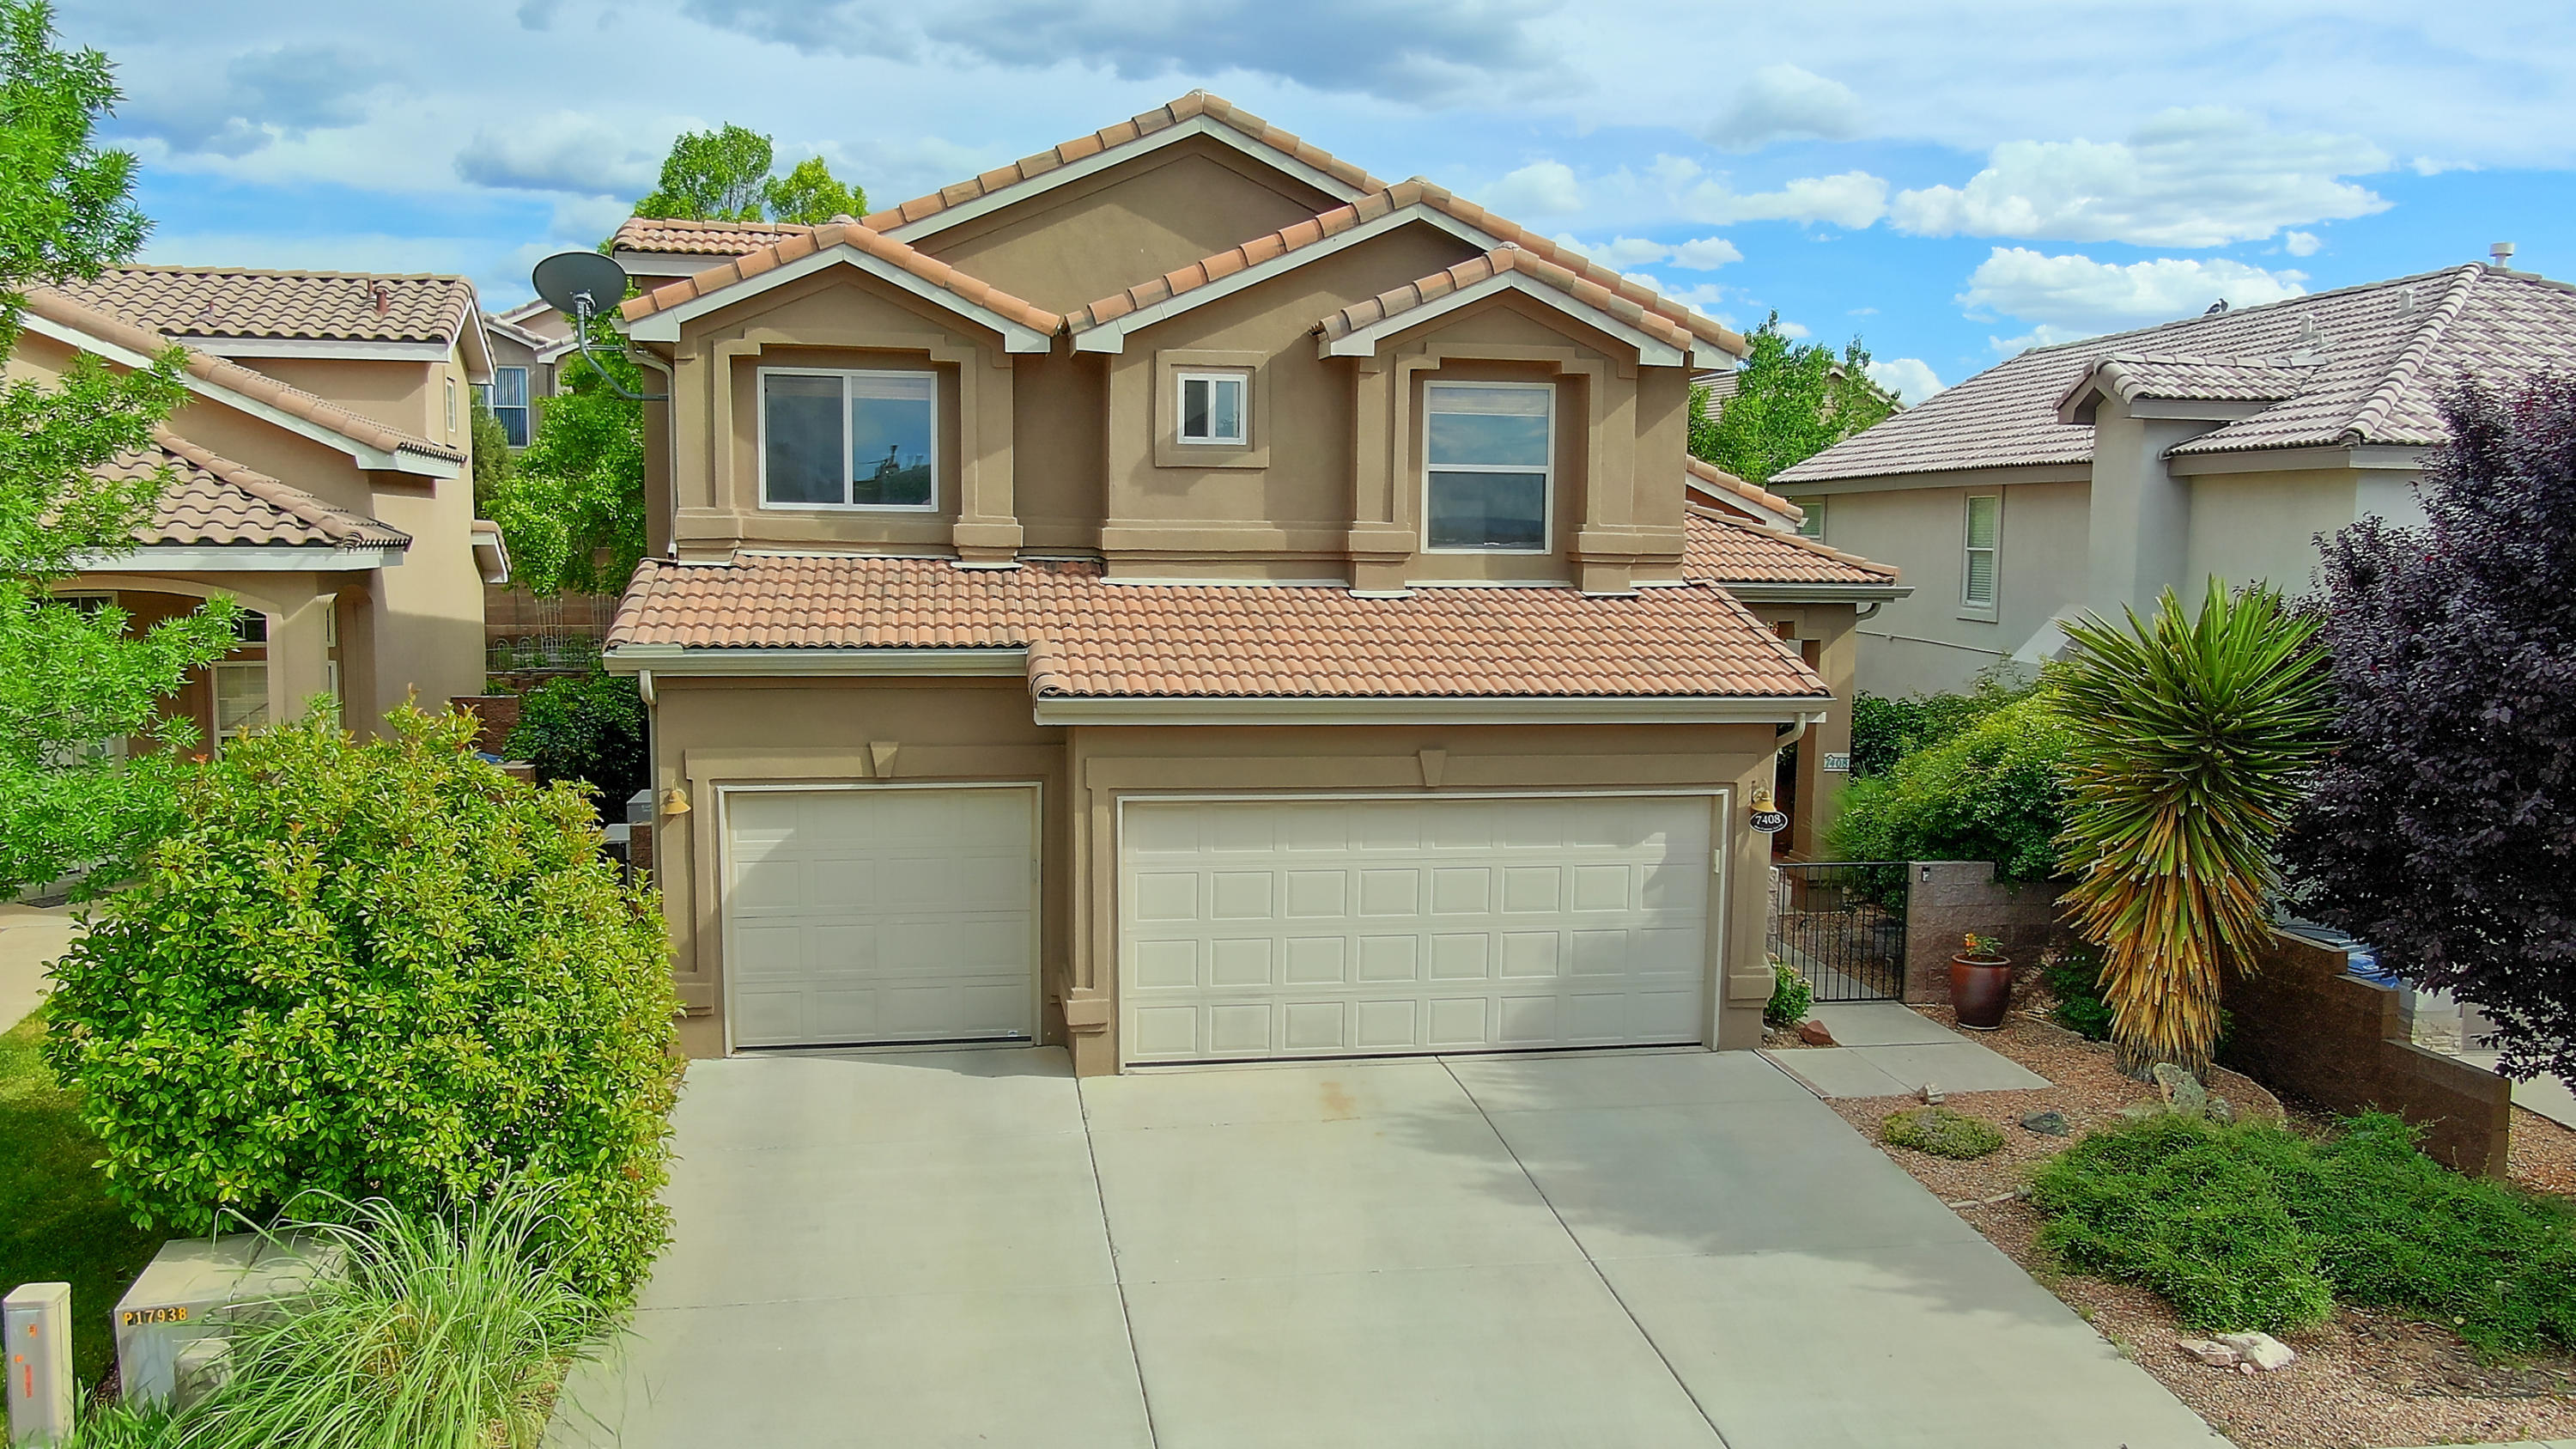 Beautiful home located in the Desert Ridge Trails community.  Home Features - An updated gourmet kitchen with island and granite counters tops that opens up to the large great room with fireplace, 2 living areas, very large master suite with separate retreat area, covered balcony off the master, downstairs bedroom and full bath room,  Inviting and private backyard with large trees and pond and large 3 car garage for all the toys!